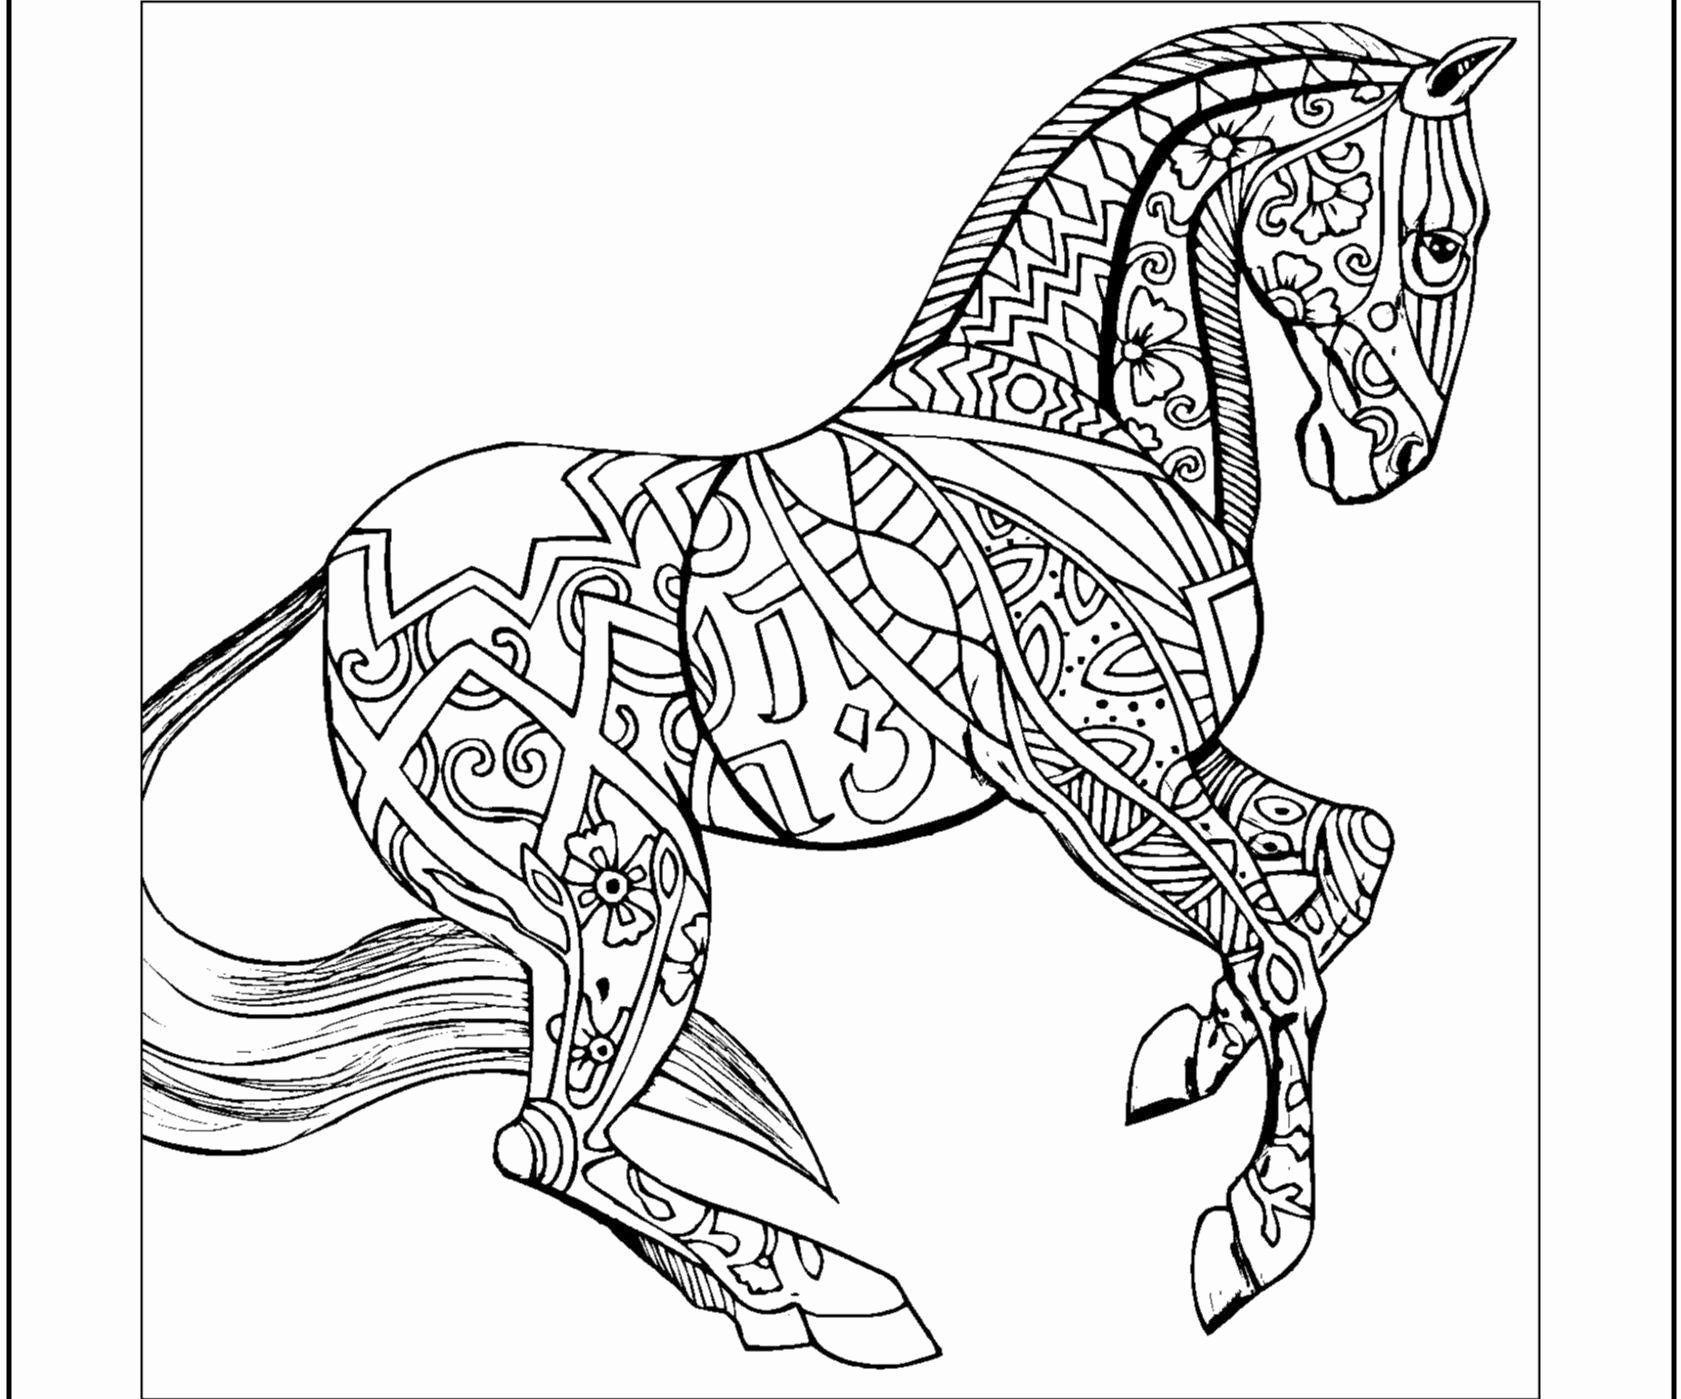 horse color sheet horse coloring pages getcoloringpagesorg horse color sheet